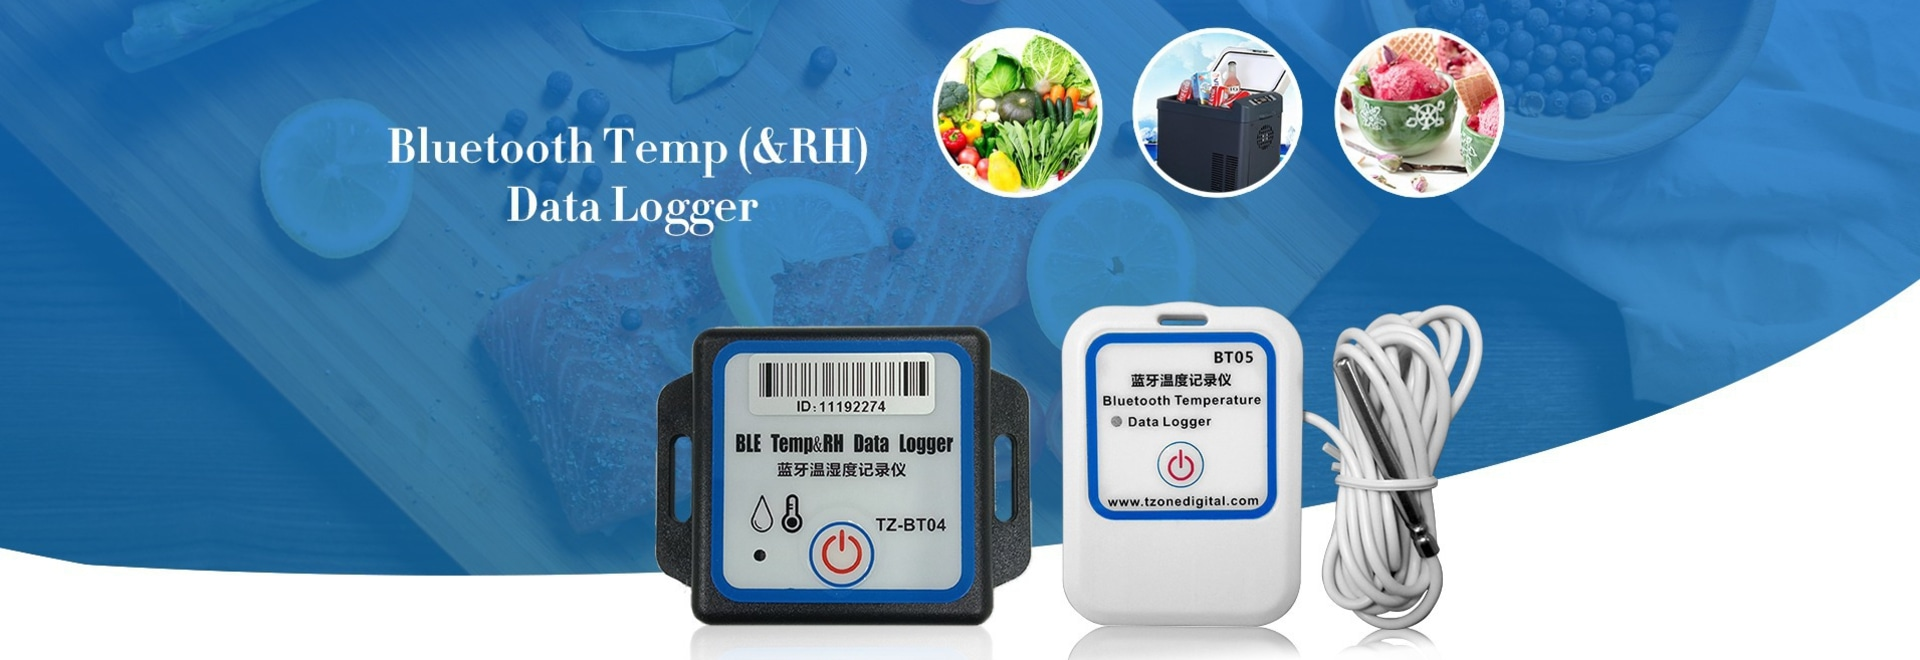 Bluetooth temperature and humidity data loggers make it easy for cold chain management